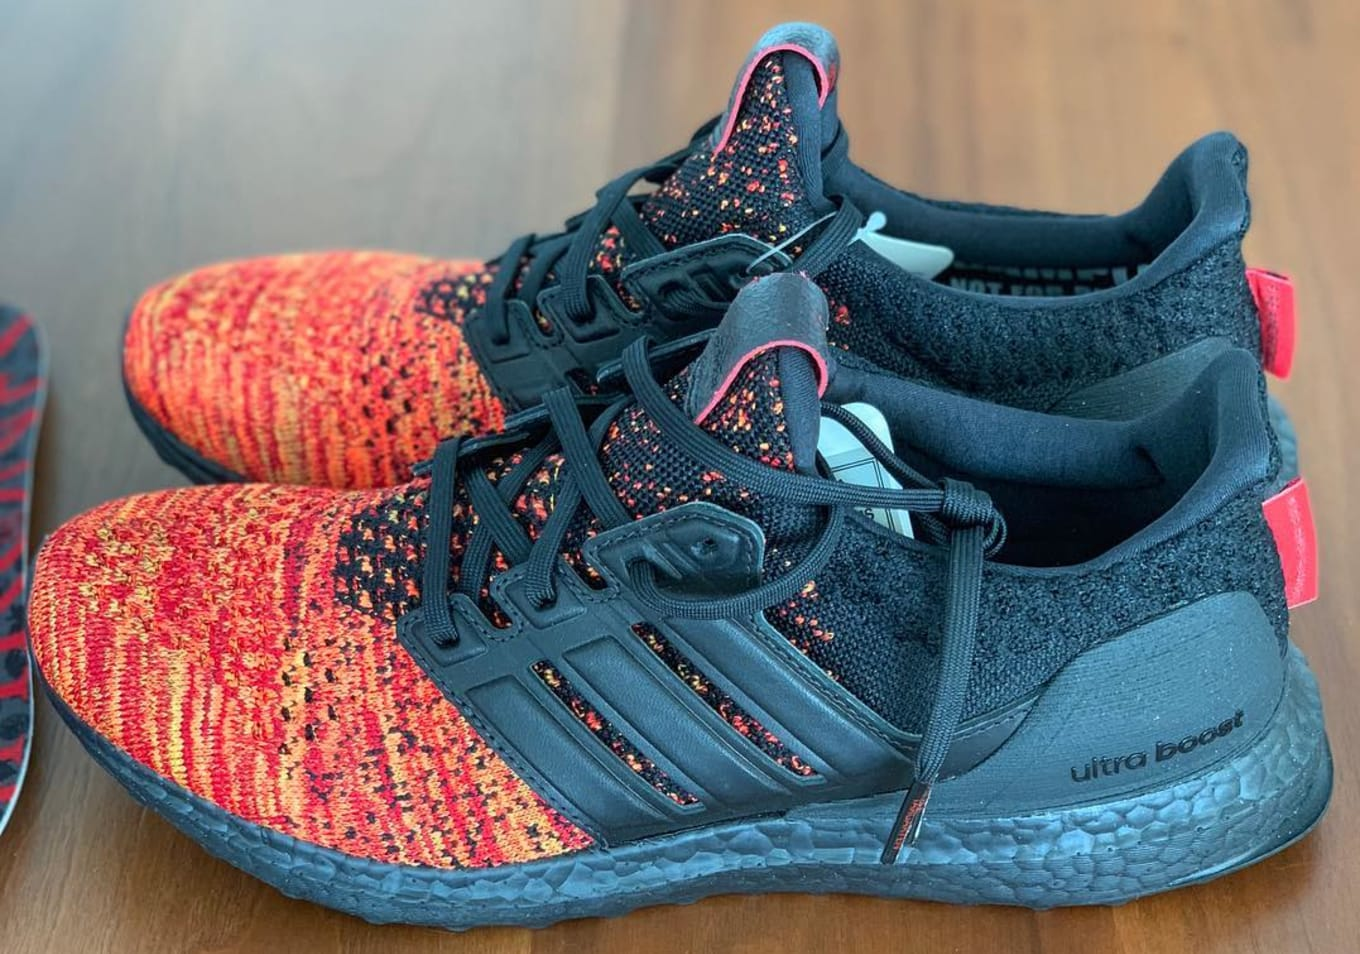 3261ef349cc42 Game of Thrones x Adidas Ultra Boost  Targaryen  Release Date